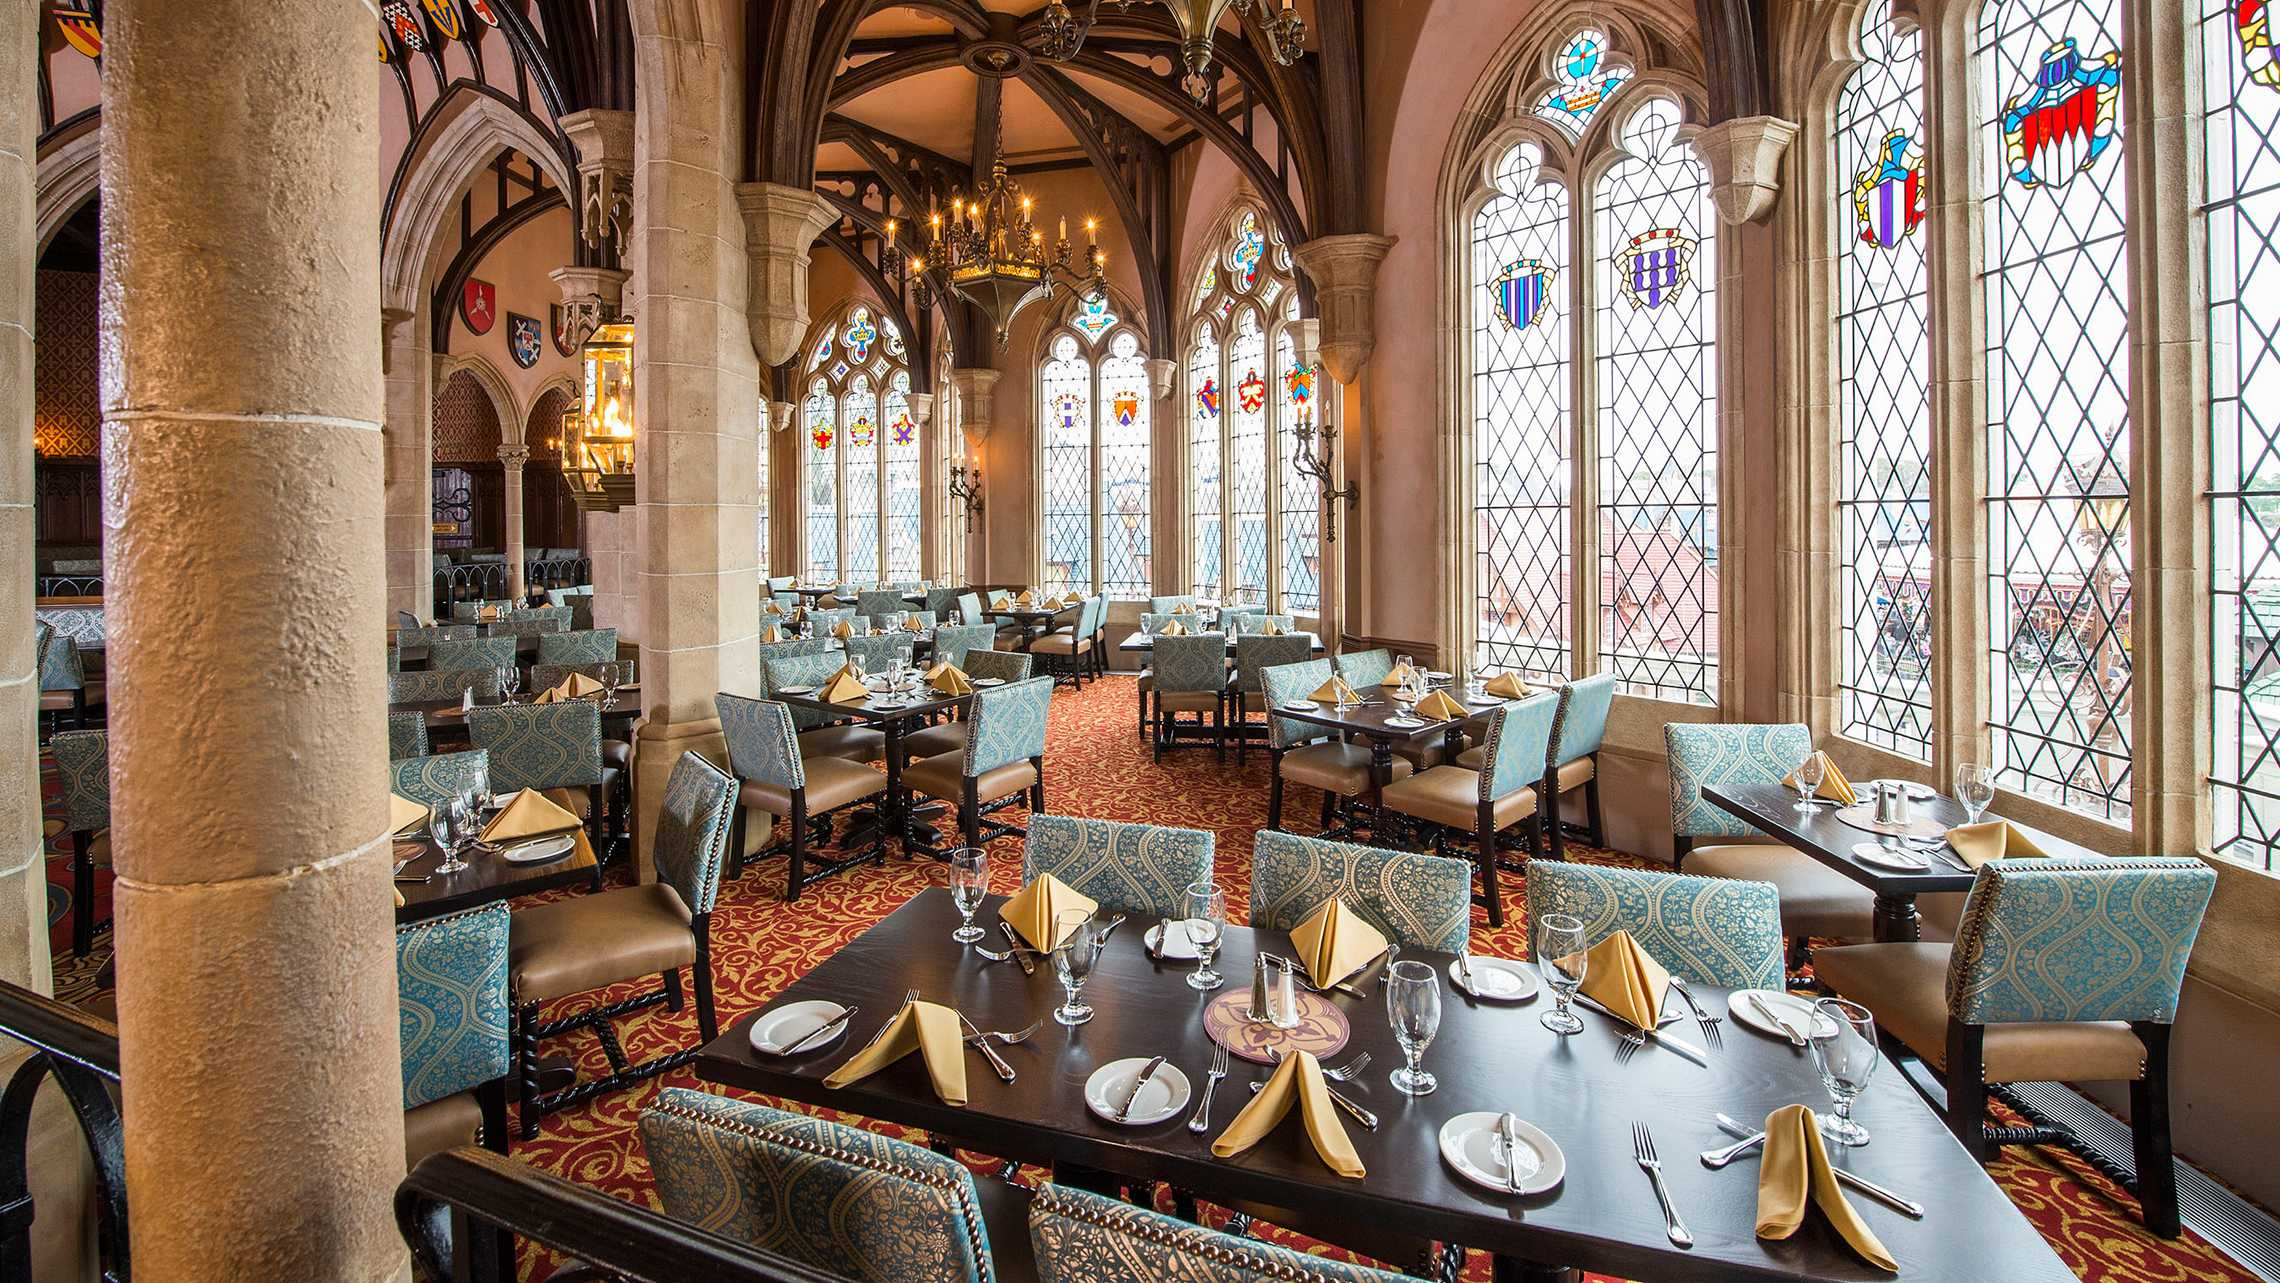 Disney Dining Plan Cinderella Royal Table